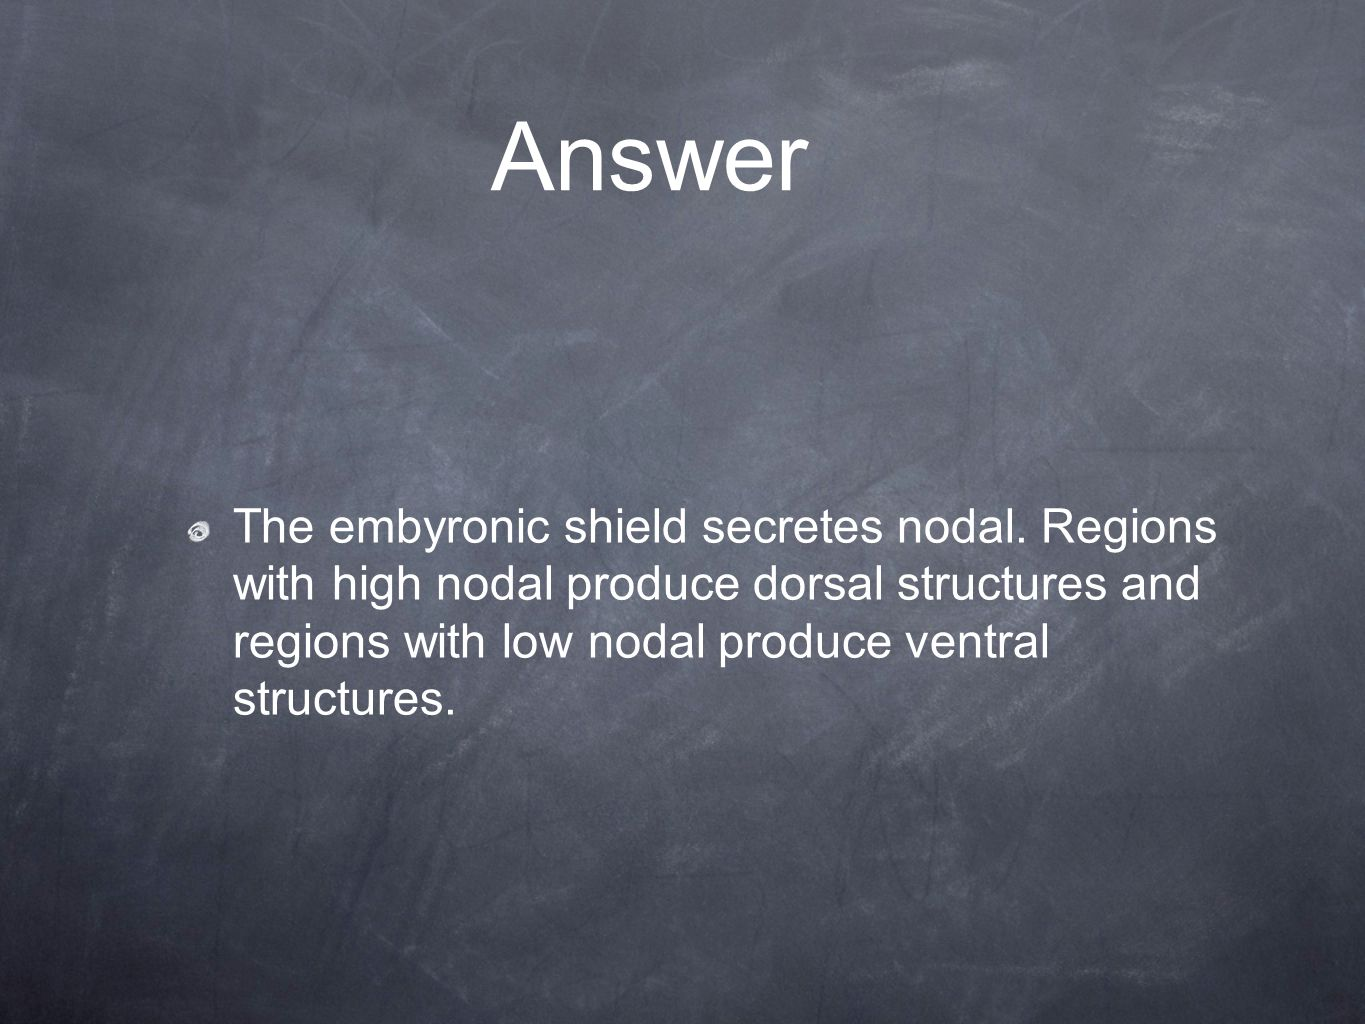 Answer The embyronic shield secretes nodal. Regions with high nodal produce dorsal structures and regions with low nodal produce ventral structures.